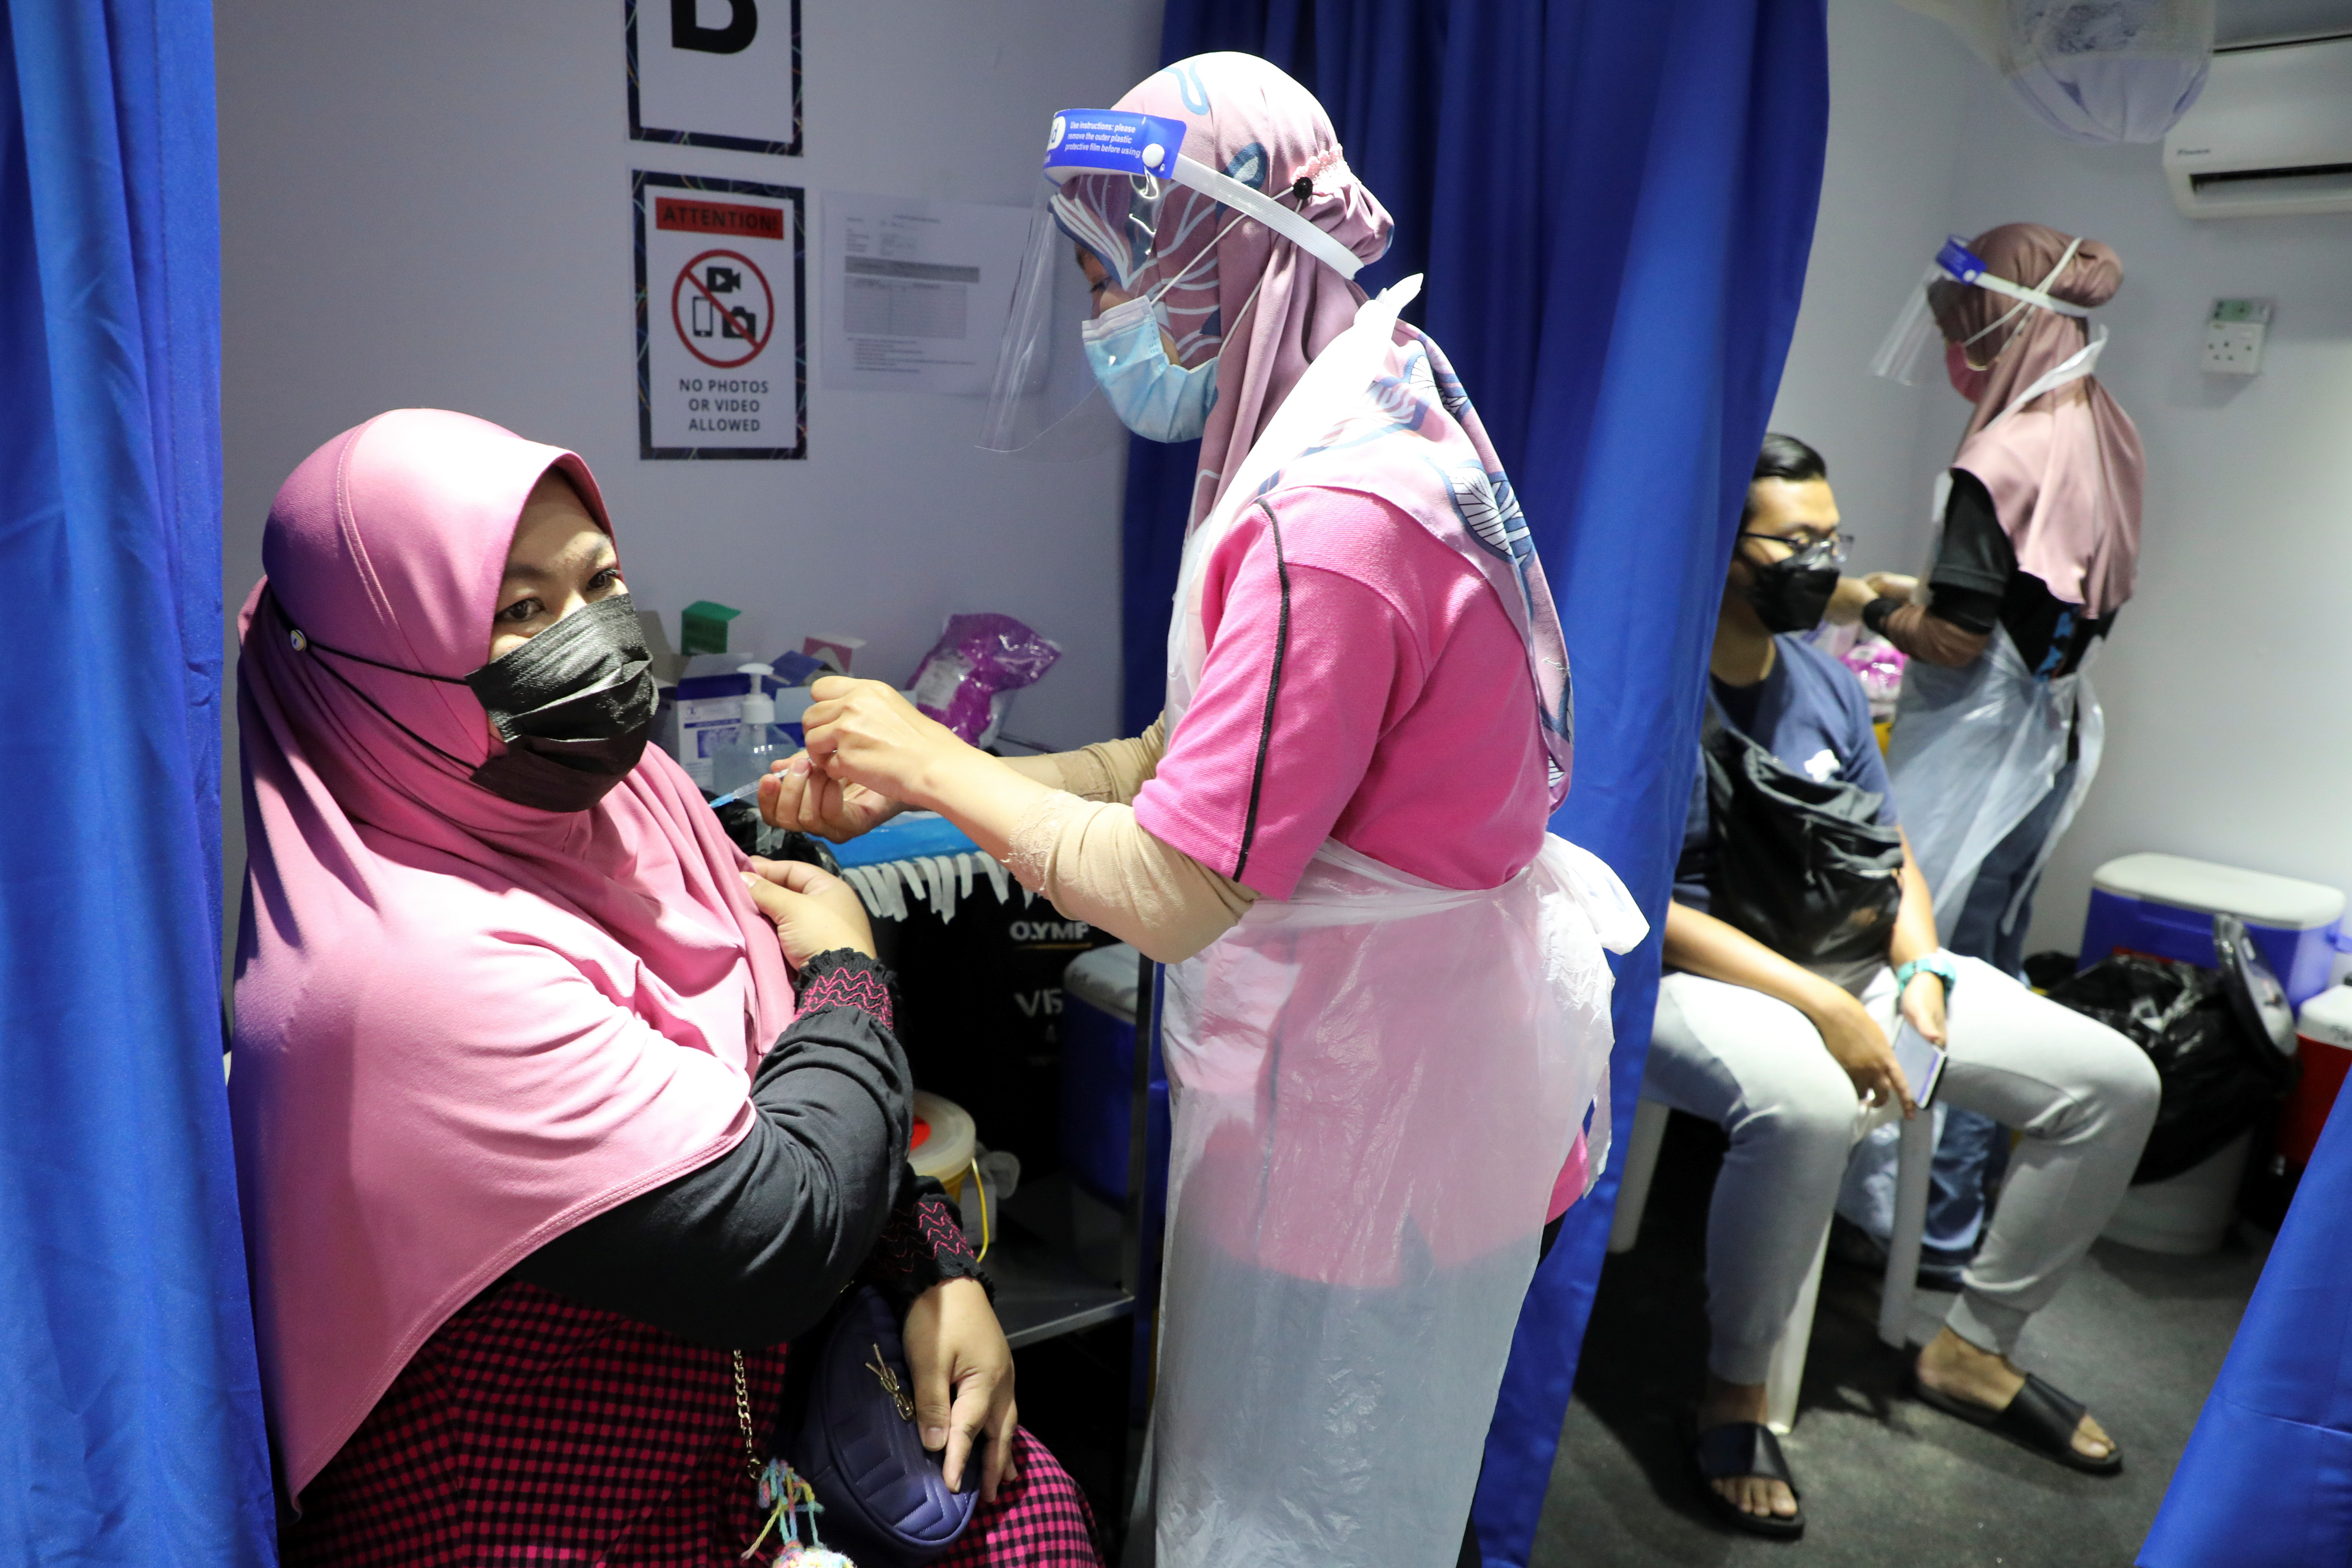 People receive doses of the Sinovac vaccine against the coronavirus disease (COVID-19) in a vaccination truck in Kuala Lumpur, Malaysia July 12, 2021. REUTERS/Lim Huey Teng